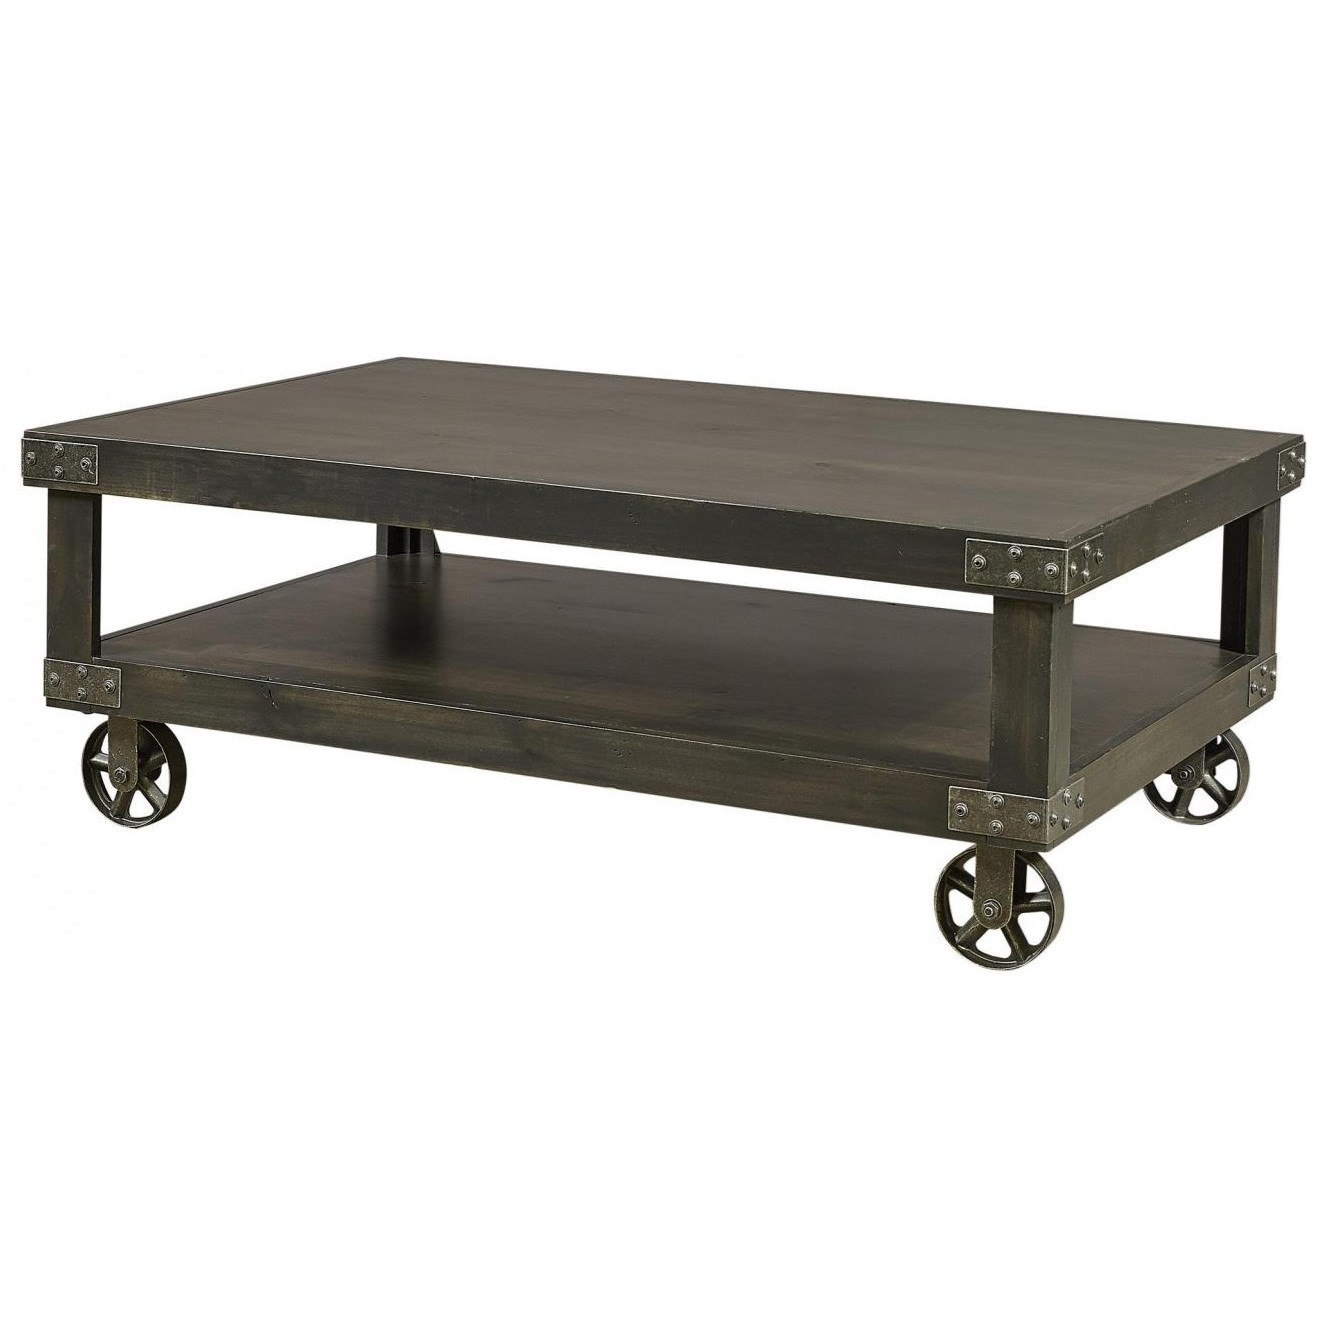 Industrial Cocktail Table  by Aspenhome at Godby Home Furnishings